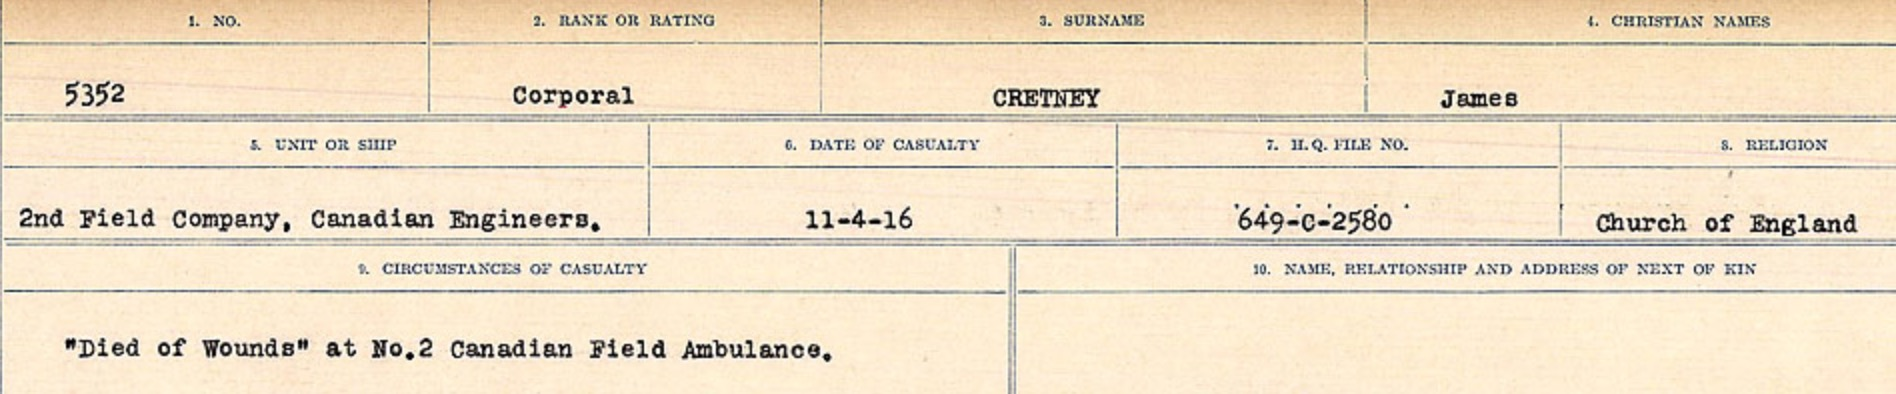 Circumstances of death registers– Source: Library and Archives Canada. CIRCUMSTANCES OF DEATH REGISTERS, FIRST WORLD WAR Surnames: CRABB TO CROSSLAND Microform Sequence 24; Volume Number 31829_B016733. Reference RG150, 1992-93/314, 168. Page 485 of 788.